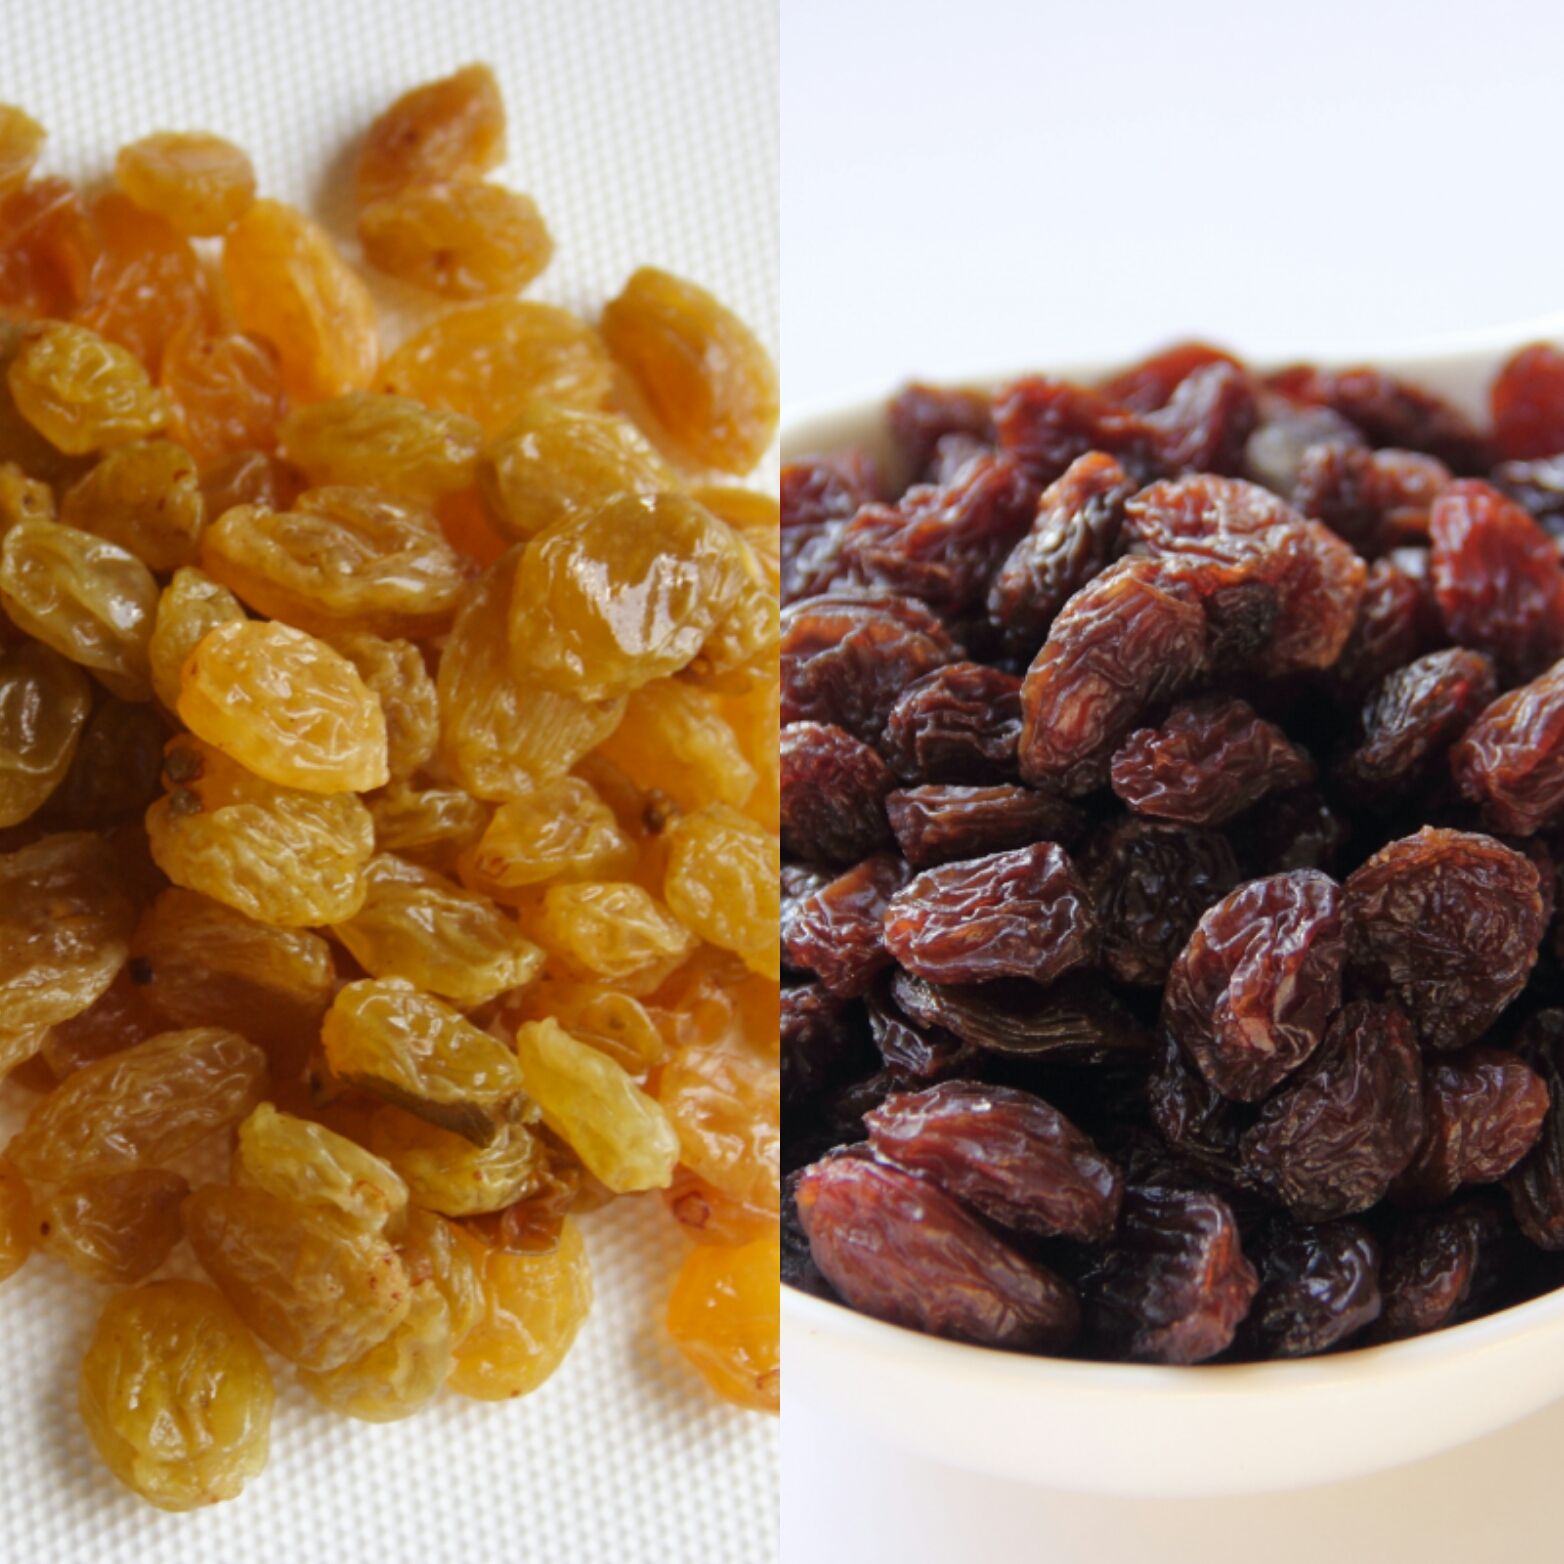 Currants vs. Raisins By Cynthia Nelson/Images© Cynthia Nelson